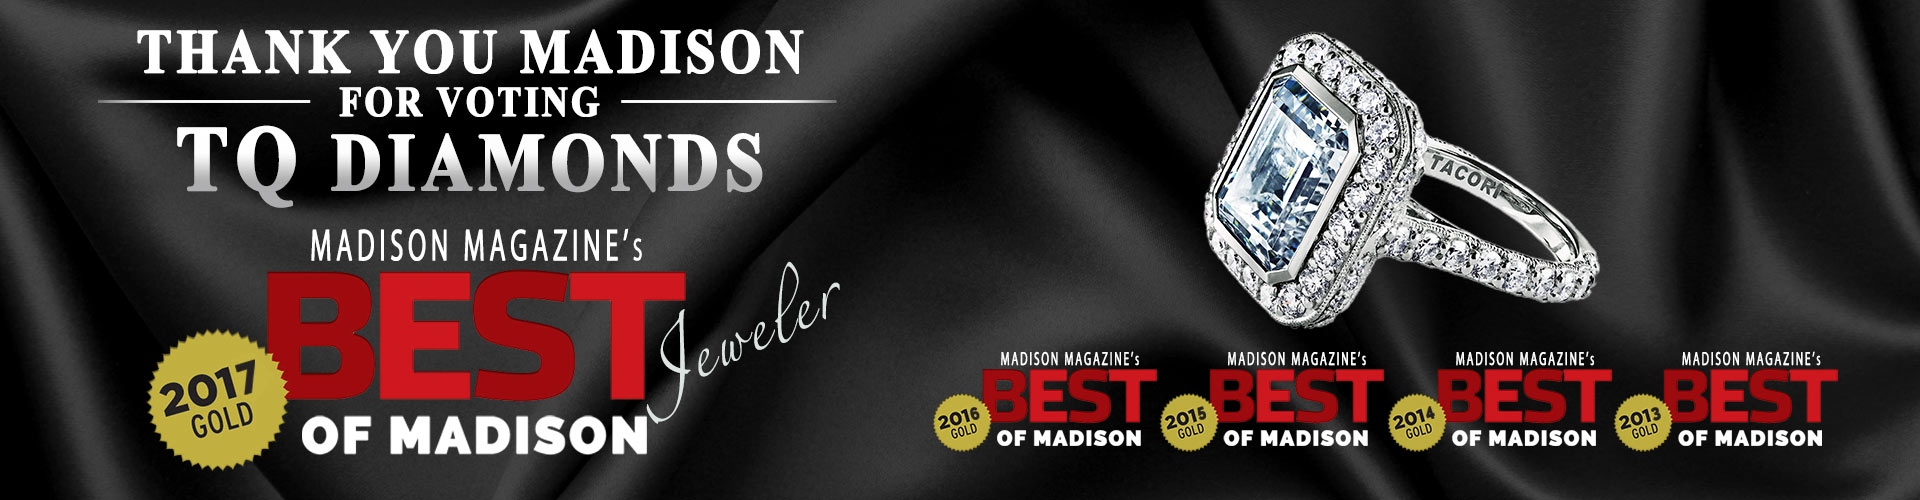 We Won - Best Jeweler of Madison 2017